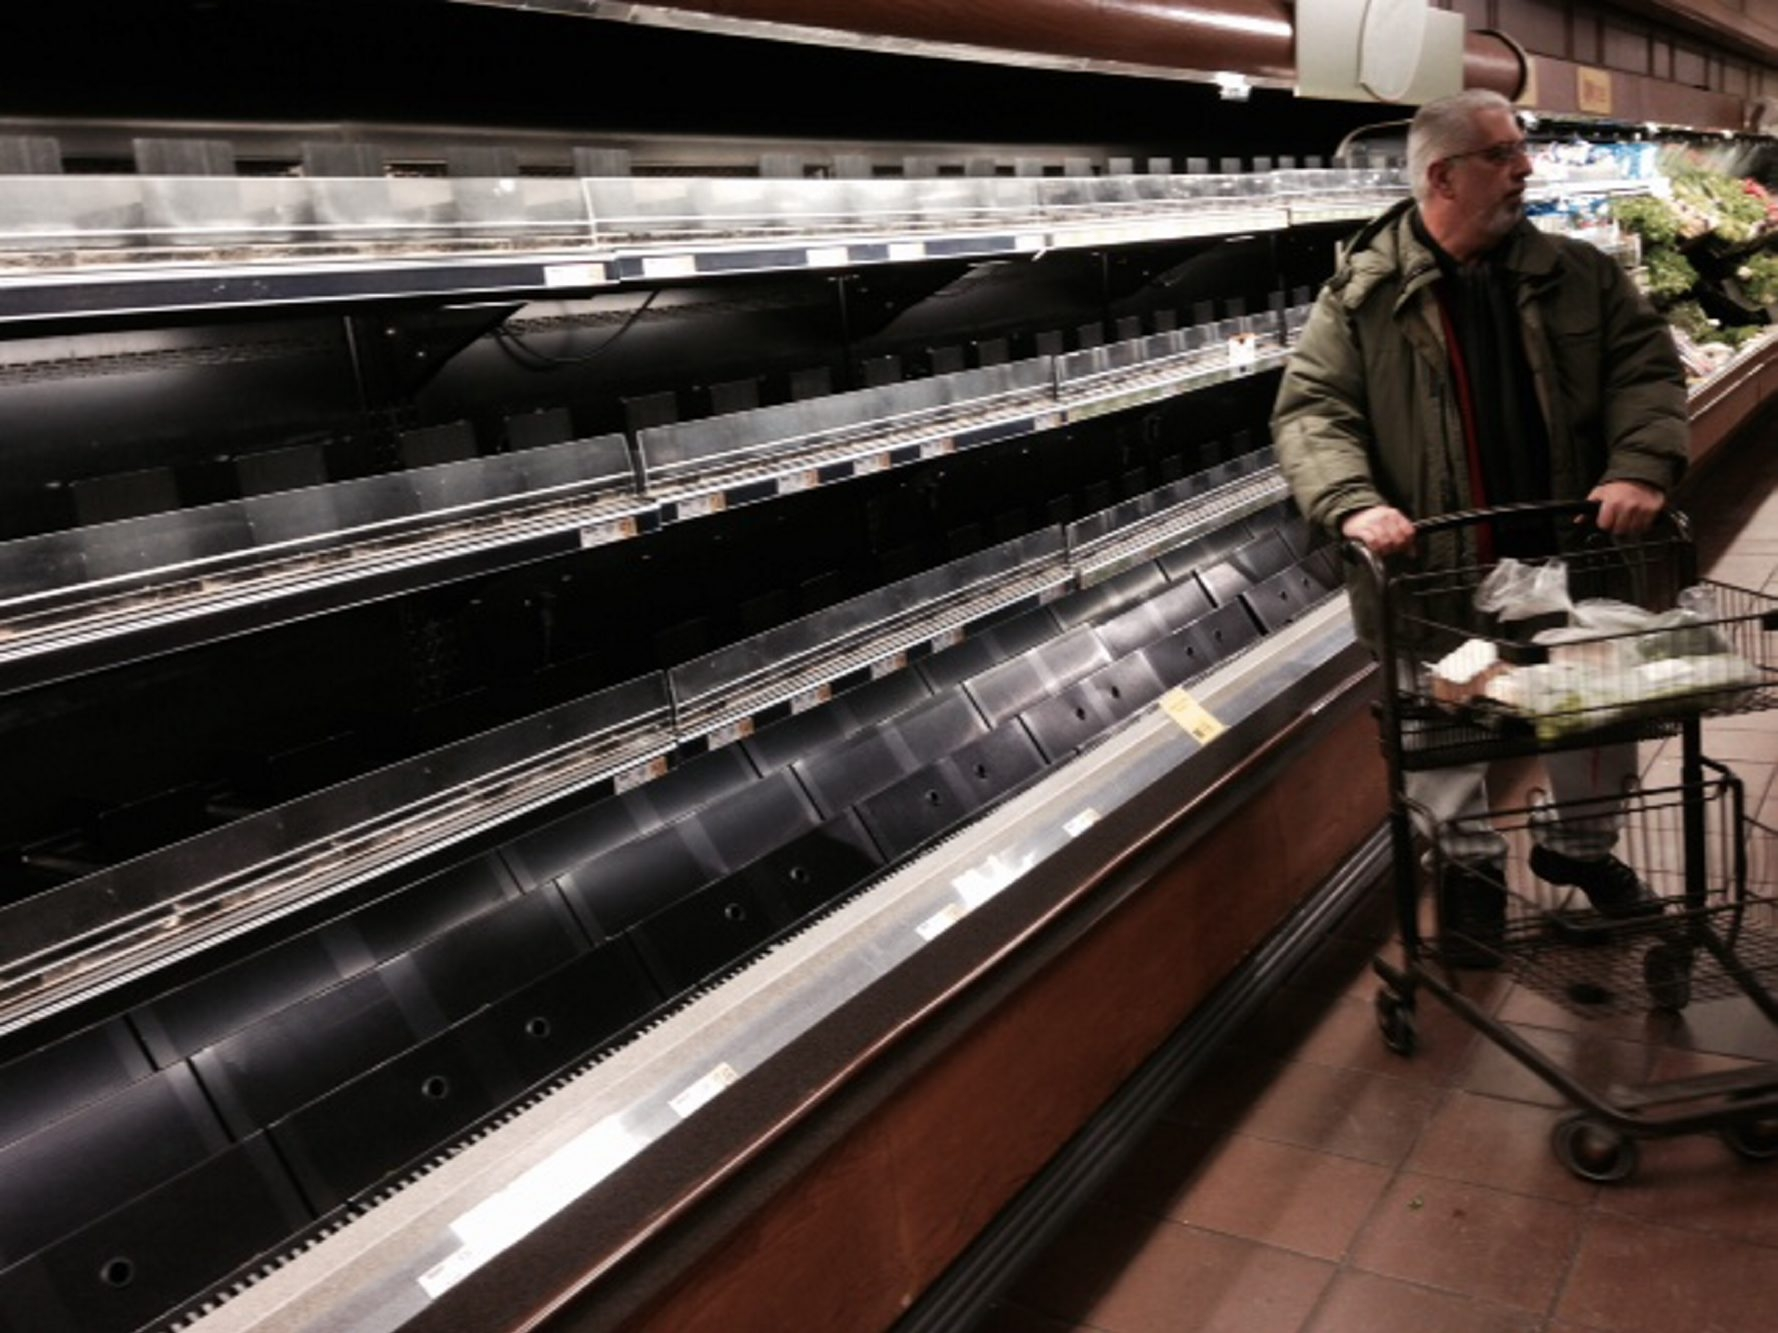 Shelves normally stocked with fresh salads are empty at Wegmans on Amherst Street in Buffalo after storms in the Midwest  interrupted delivery schedules and shoppers stocking up in preparation for the arrival of the storm locally descended.